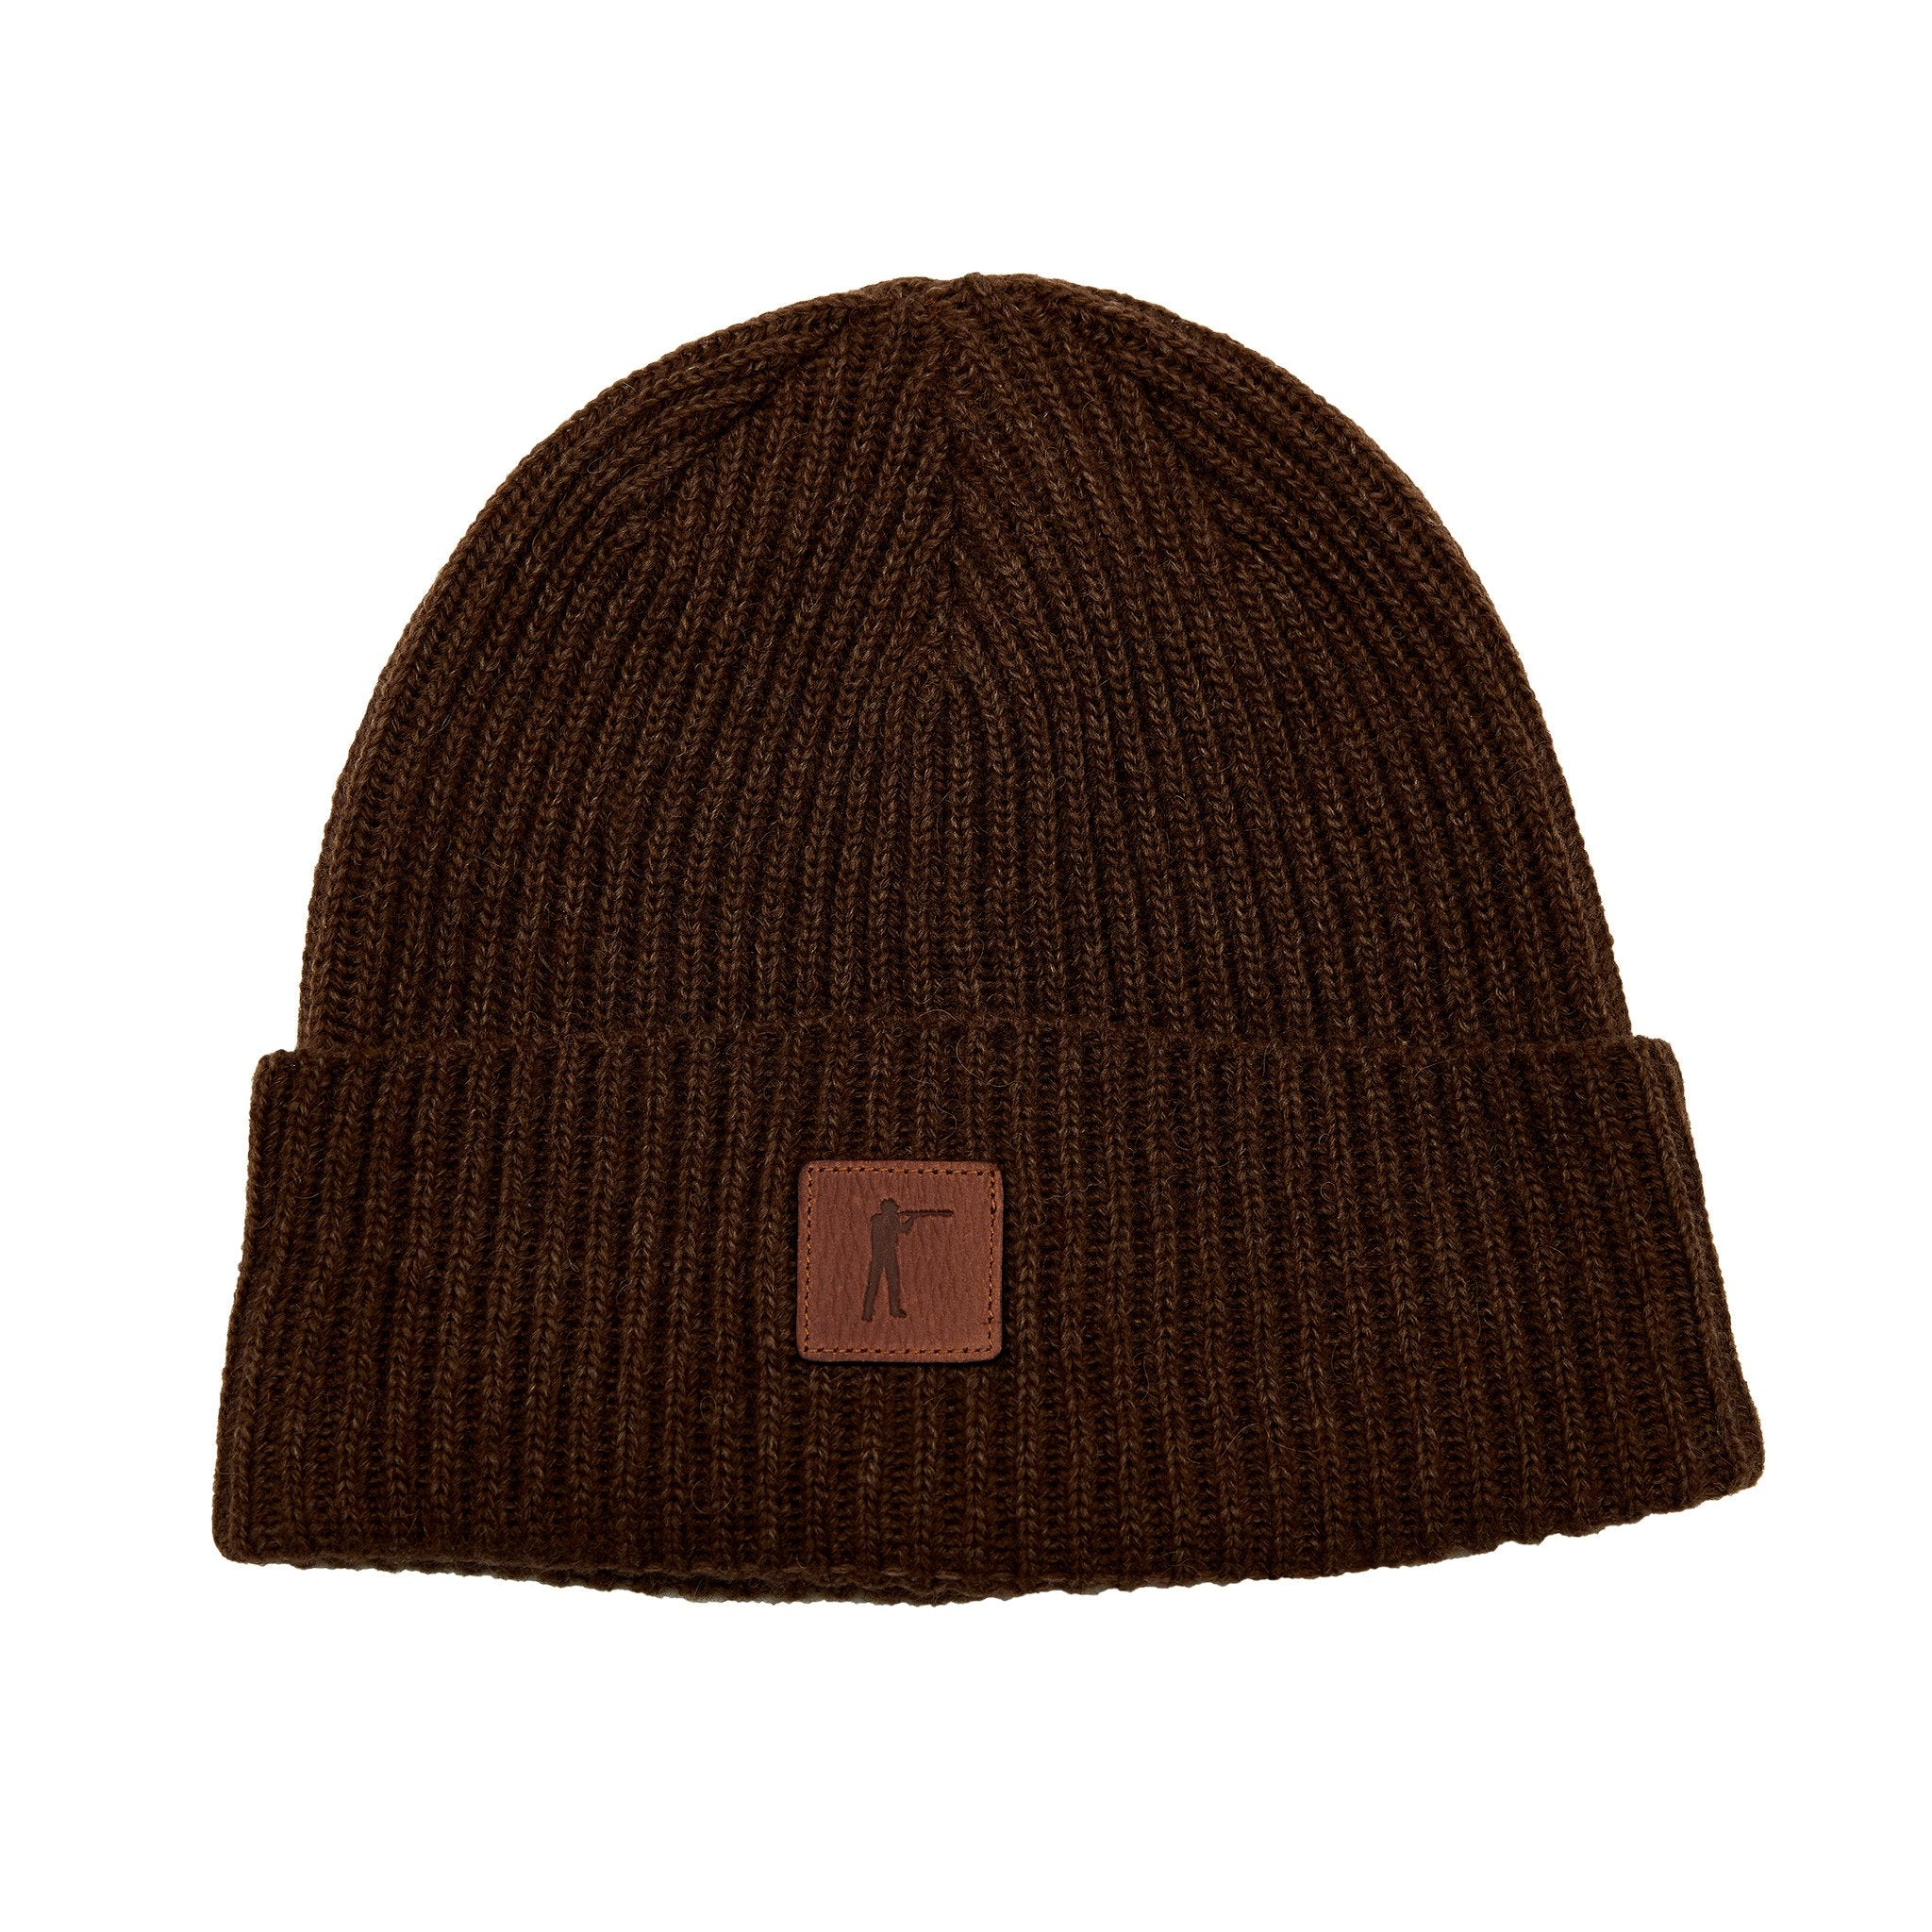 Roger Knit Hat - Bison Wool